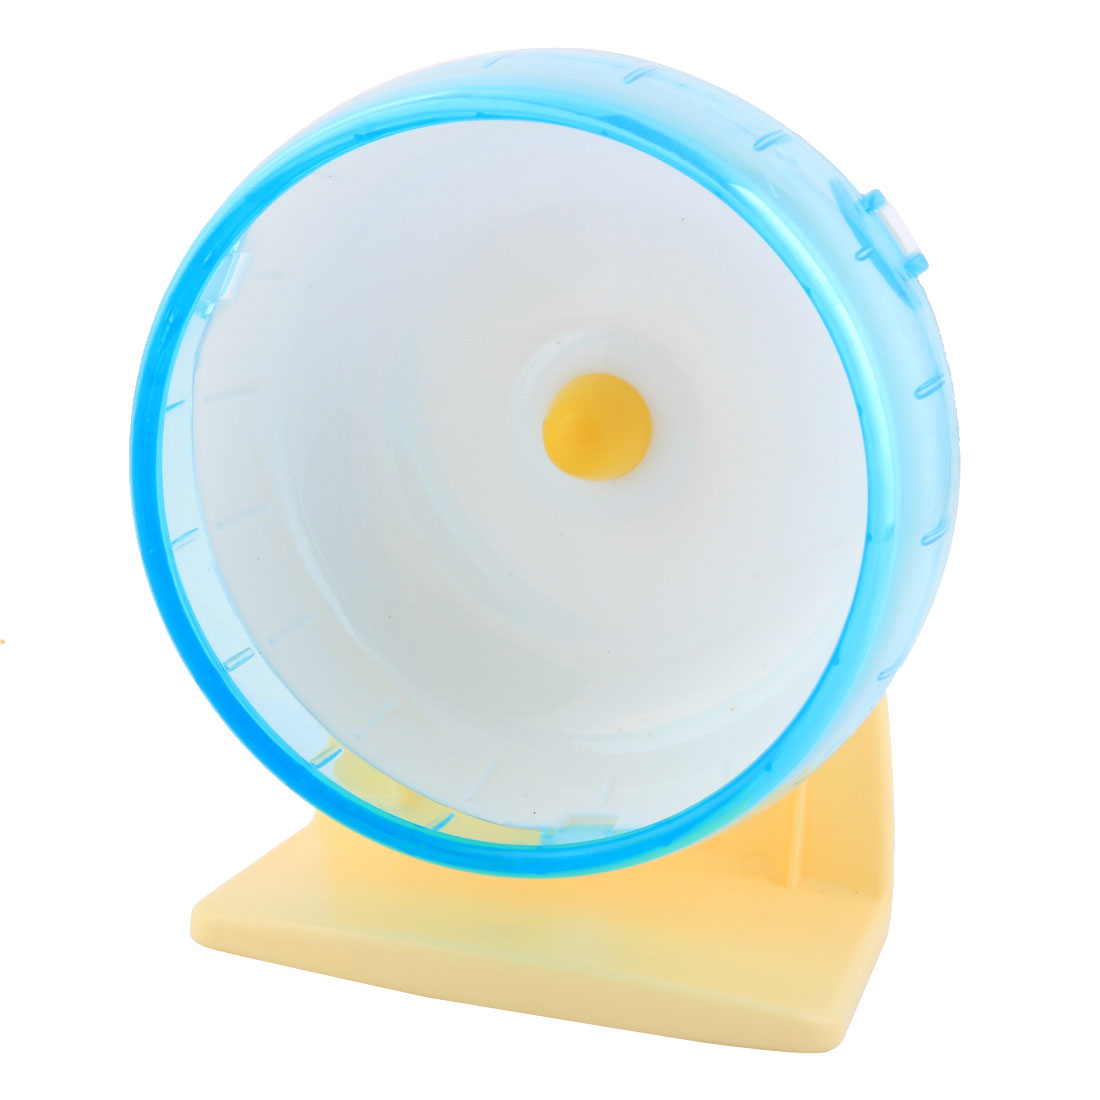 Plastic Fun Toy Pet Tread Running Exercise Wheel for Hamster Gerbil Mouse by Unique-Bargains